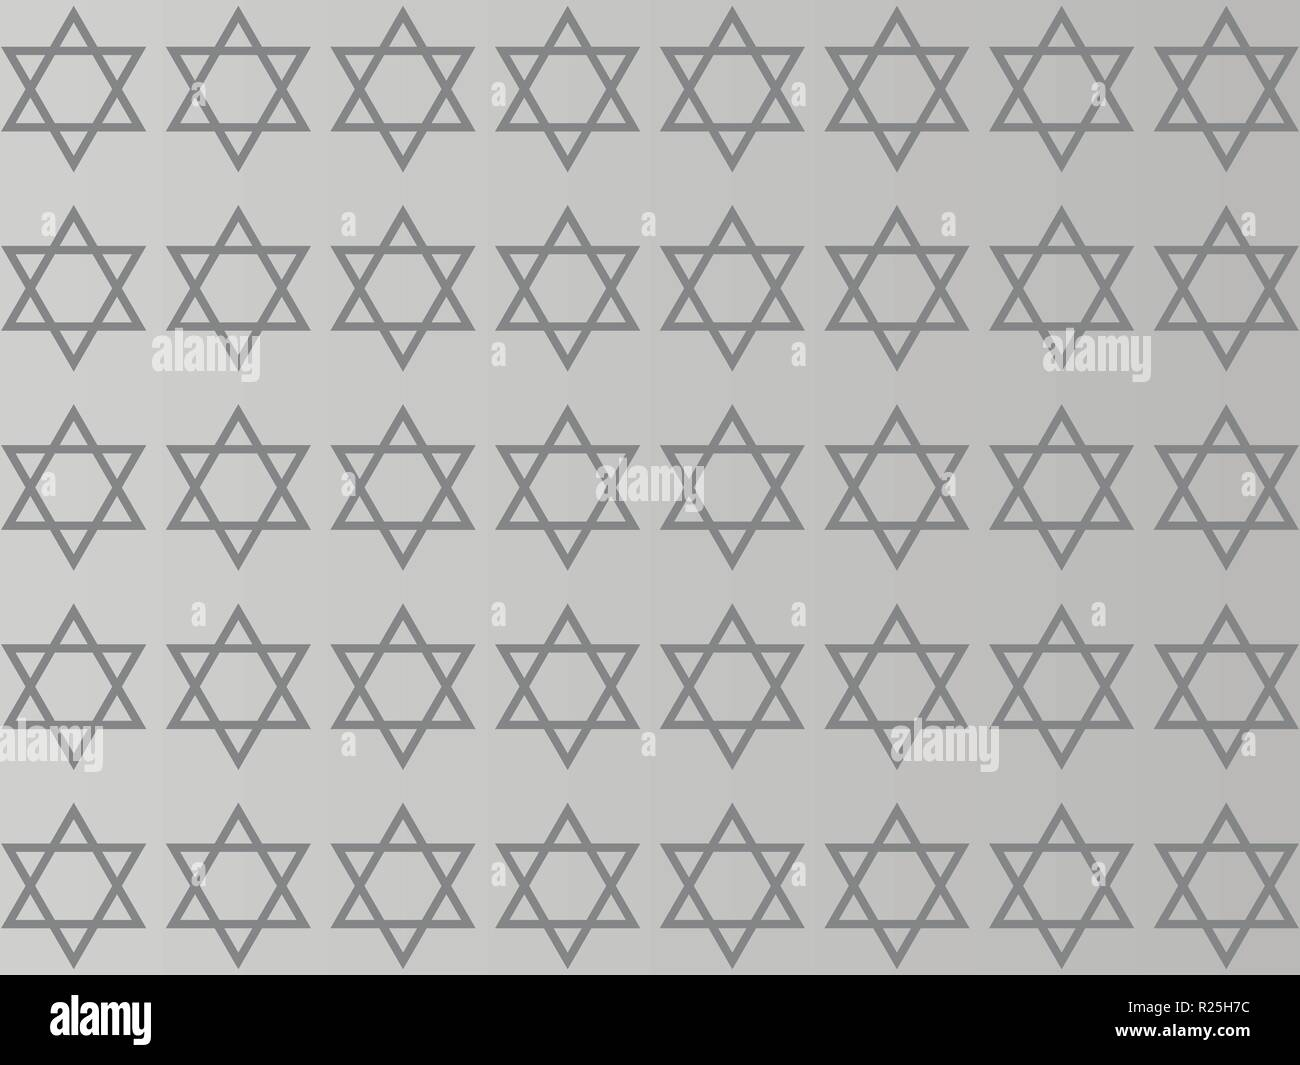 Star of David on a gray background - Stock Vector